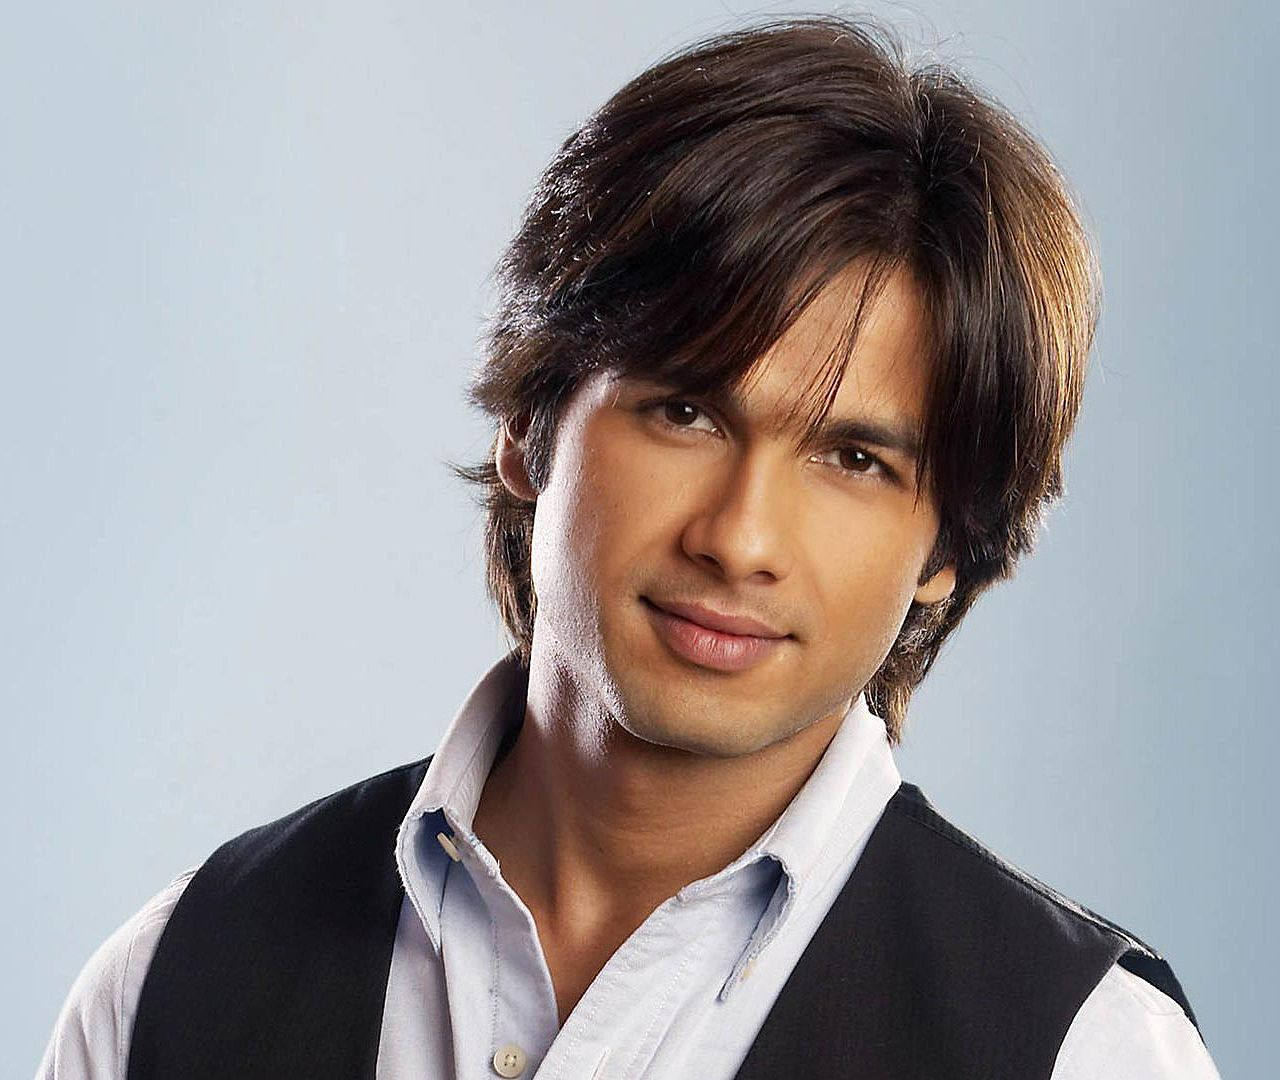 Shahid Kapoor Hairstyle And Haircut Picutes Where You Can Inspire For The Latest Fashion Trends Bollywood Actors Actors Shahid Kapoor